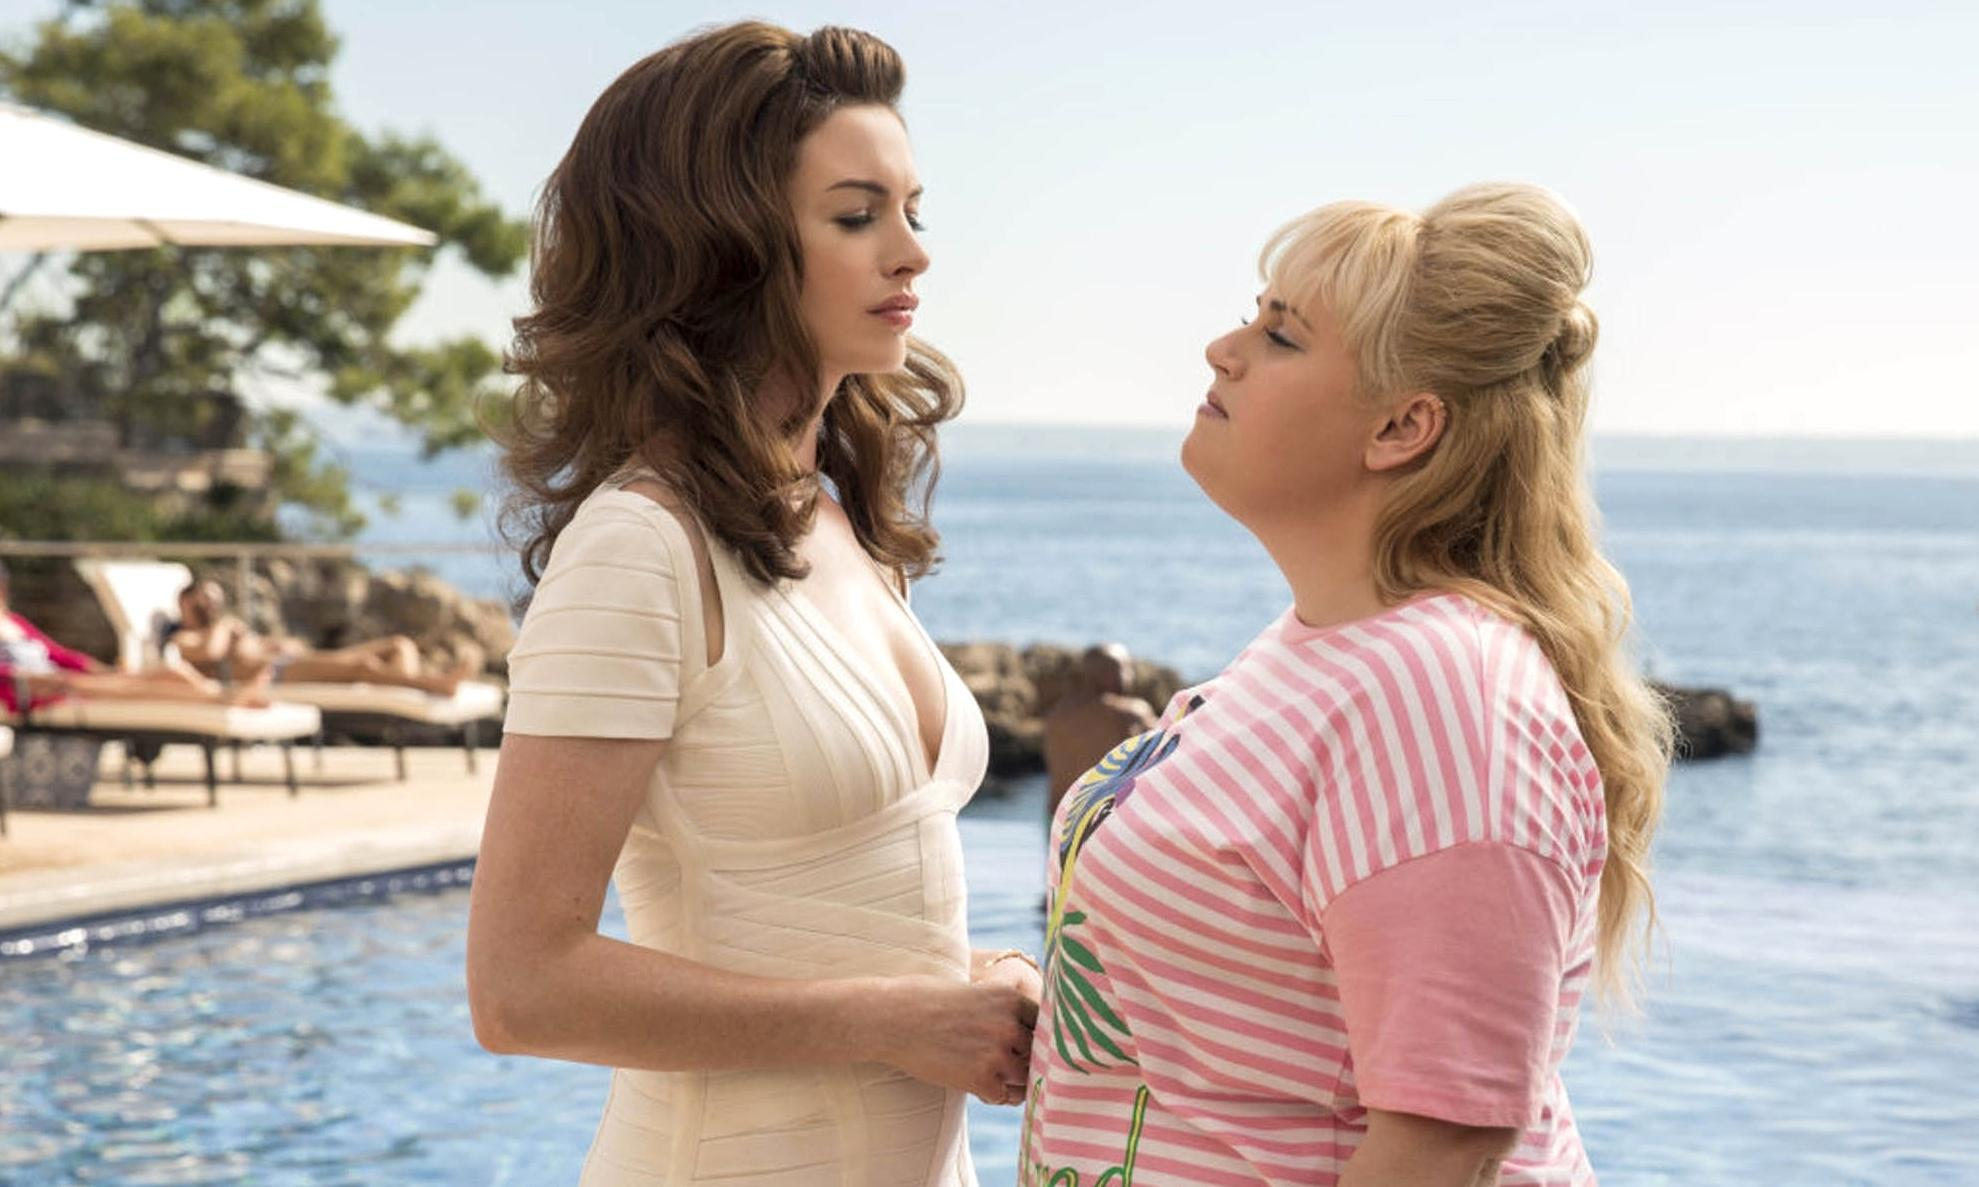 The Hustle review – Anne Hathaway kills the comedy in dire scam caper